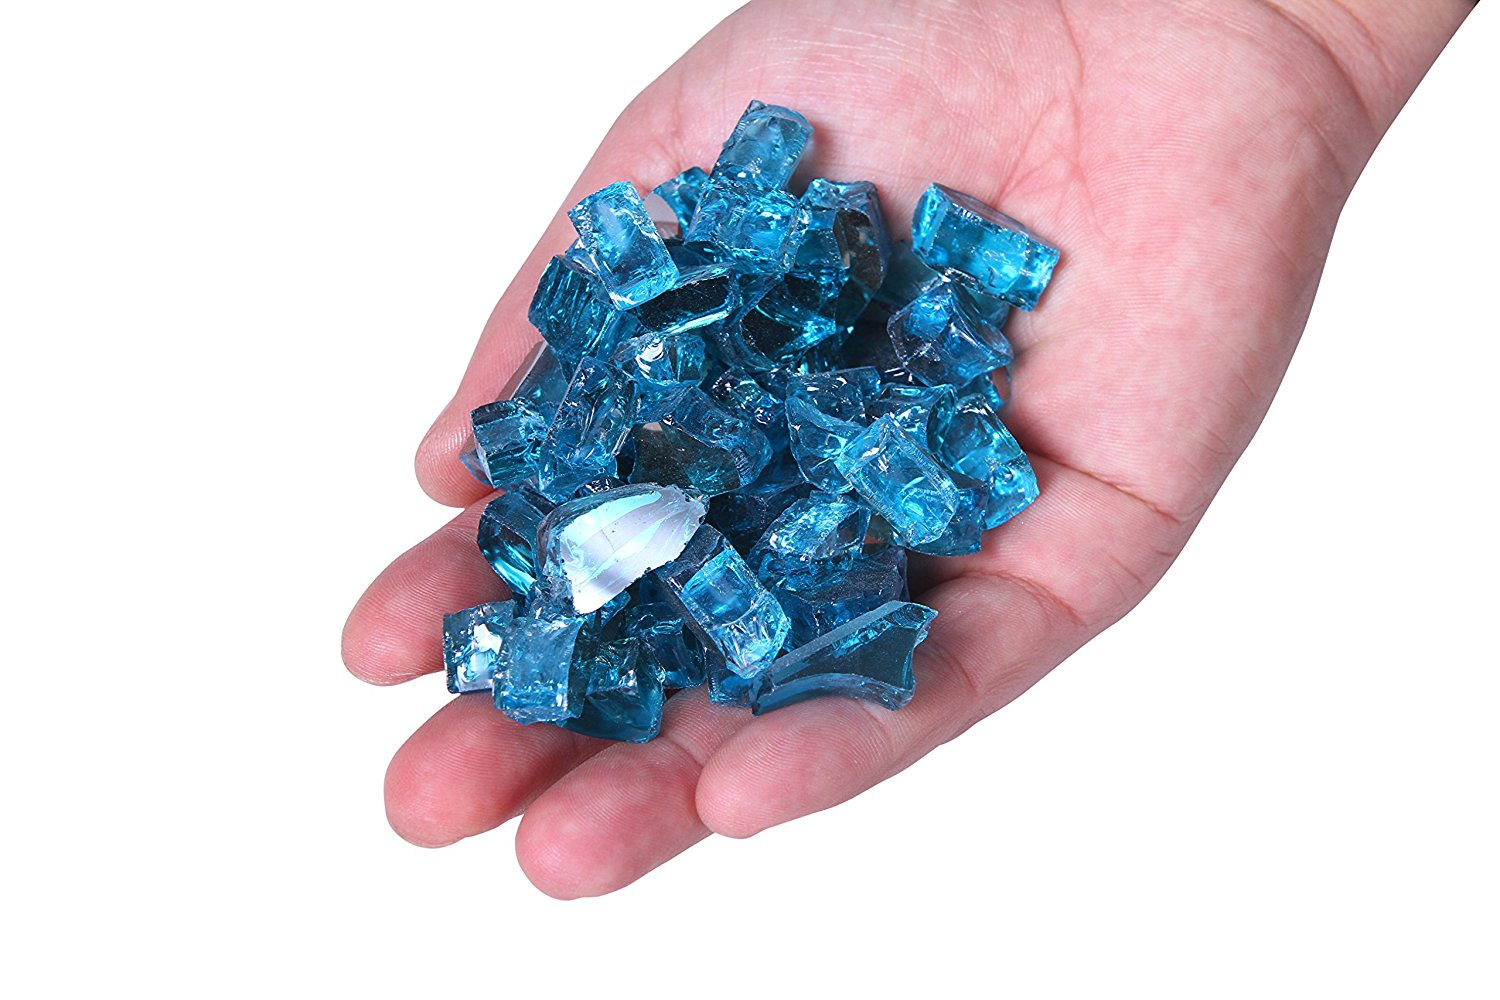 Century Modern Outdoor Fire Glass For Fire Pit,Reflective Tempered Fire Pit Glass For Fireplace,Fire Pit Table & Landscaping | Fire Glass Pebbles/Beads By 10 Pound (1/4), Aque Blue Reflective